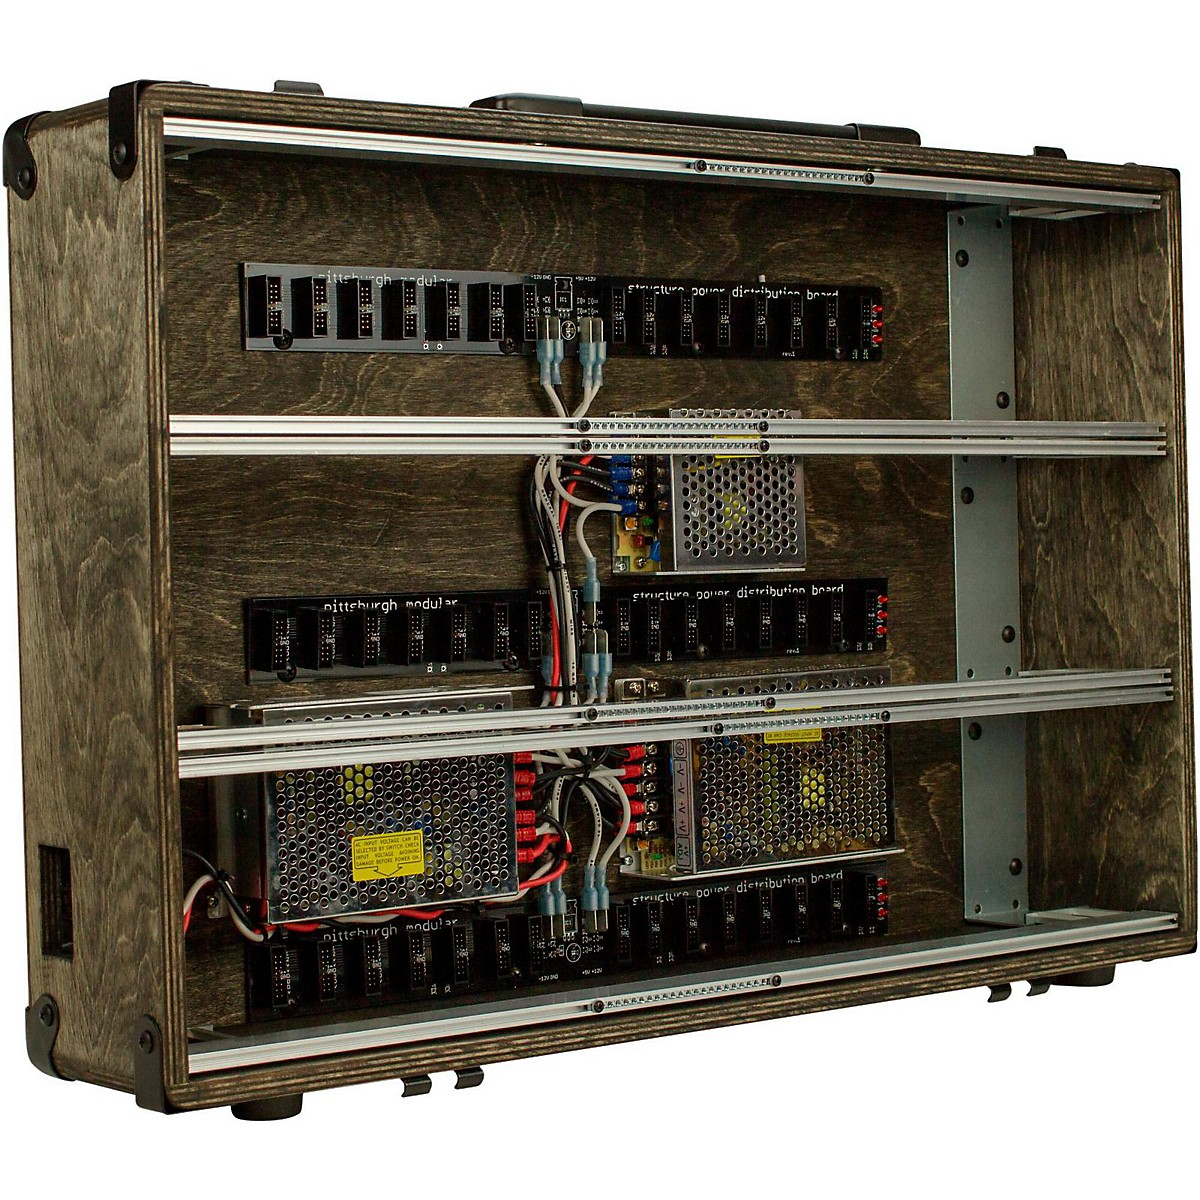 Pittsburgh Modular Synthesizers Structure EP-360